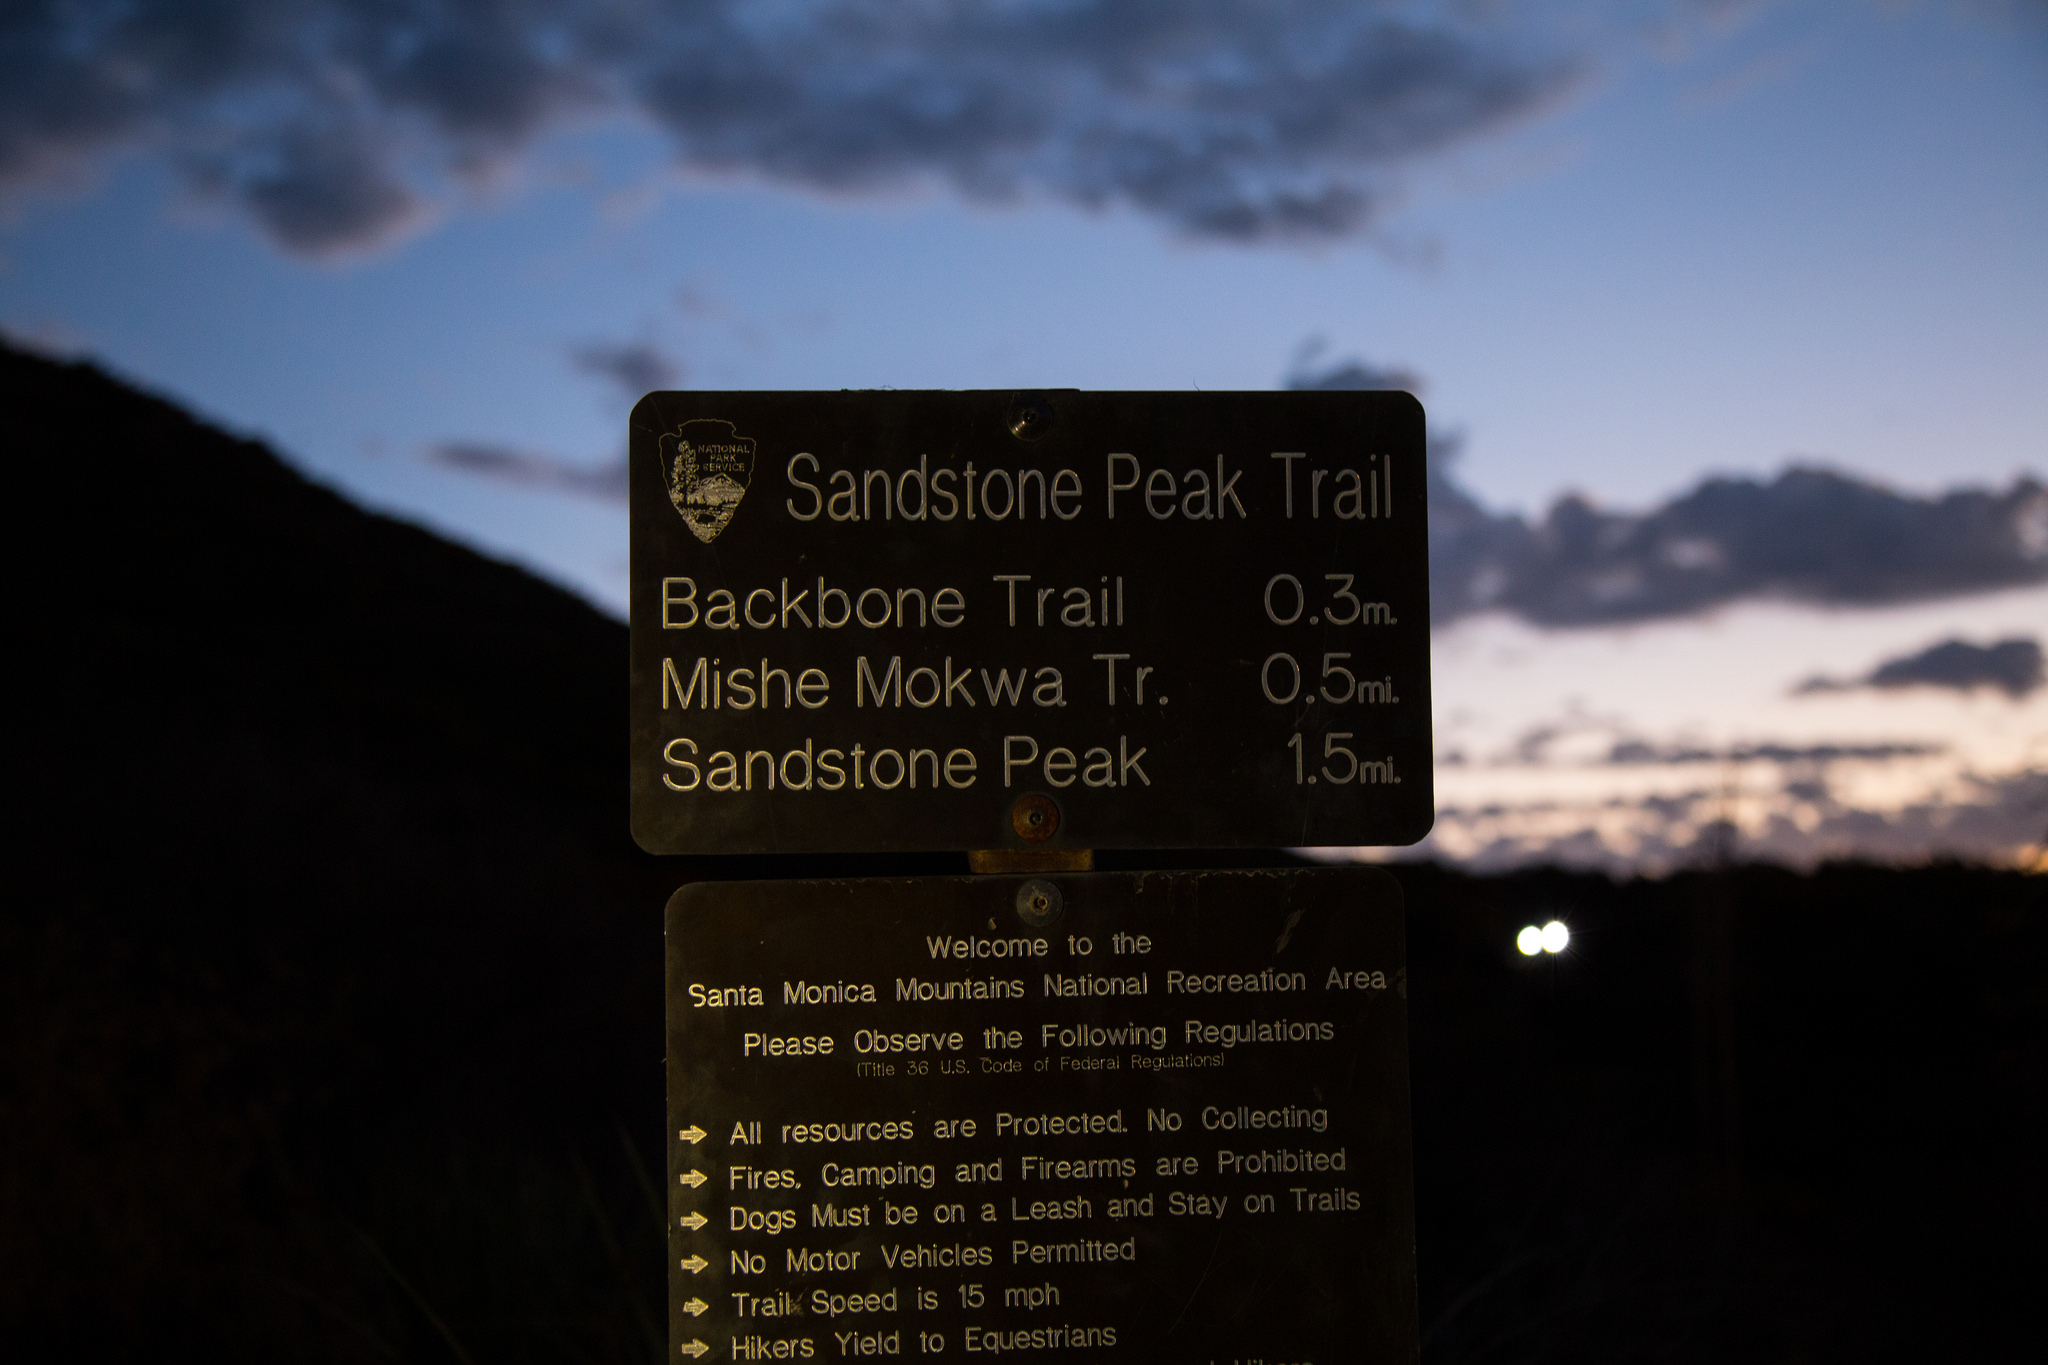 Sign at the trailhead leading to the journey.